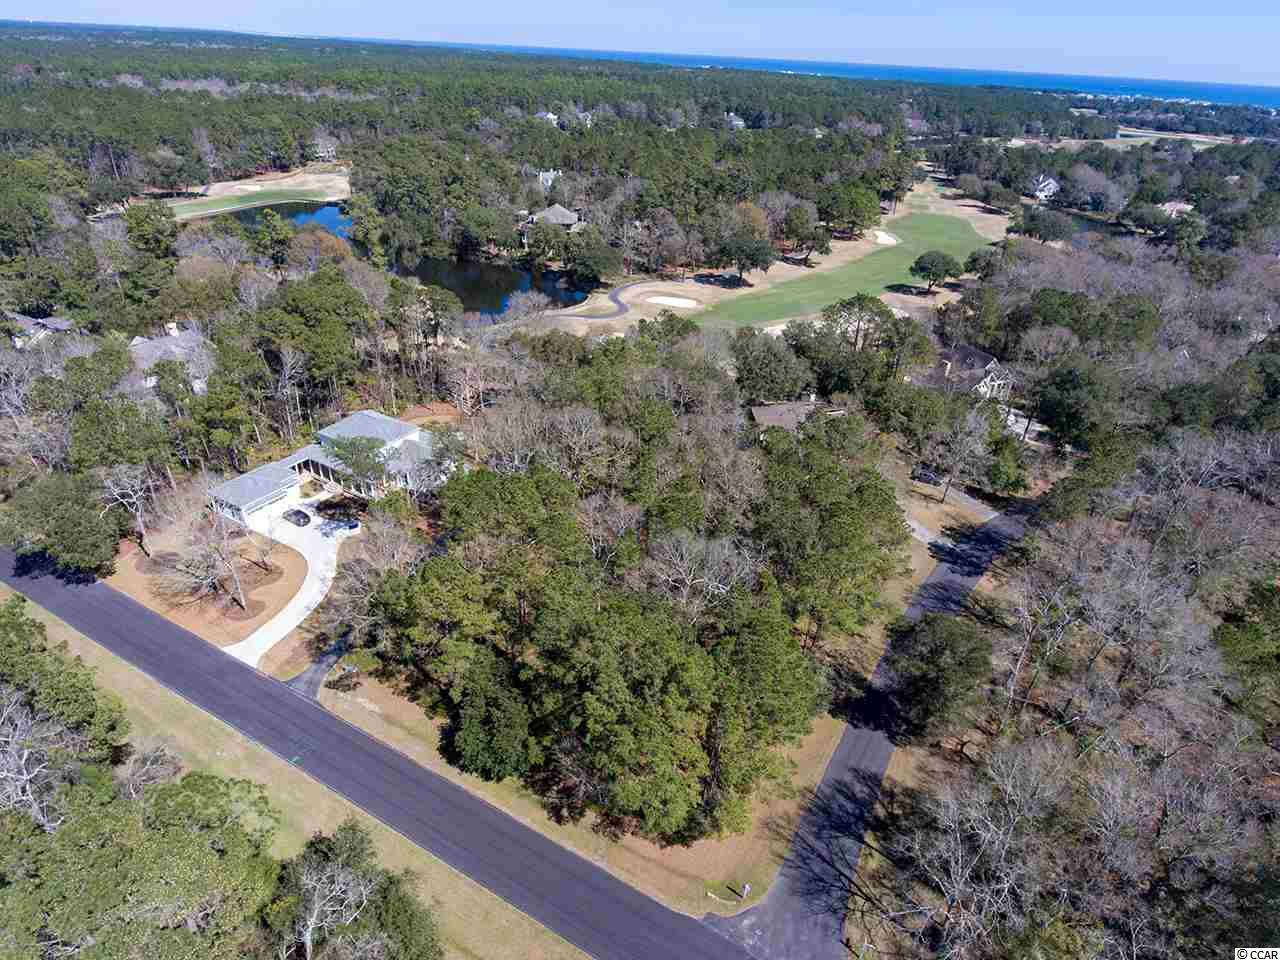 Golf Community - Large golf course home site just under (.98) one acre. It  rests on the corner of Wallace Pate and Jutland Lane  overlooking # 3 green with plenty of  beautiful trees.